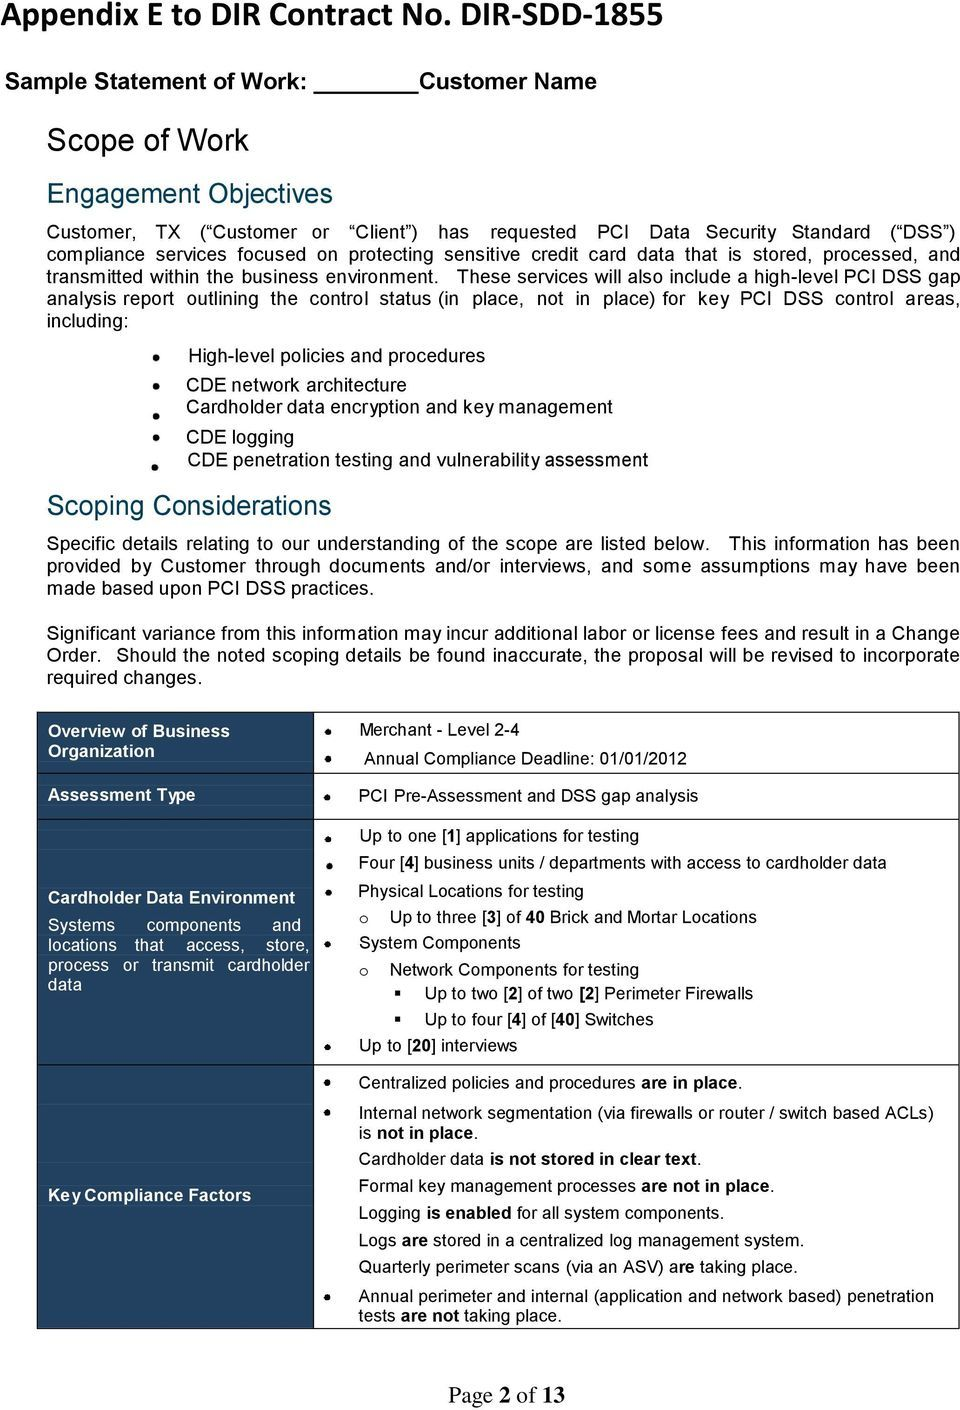 Sample Statement Of Work Pdf Free Download Pertaining To Pci Dss Gap Analysis Report Template Best Sample Statement Of Work Report Template Best Templates